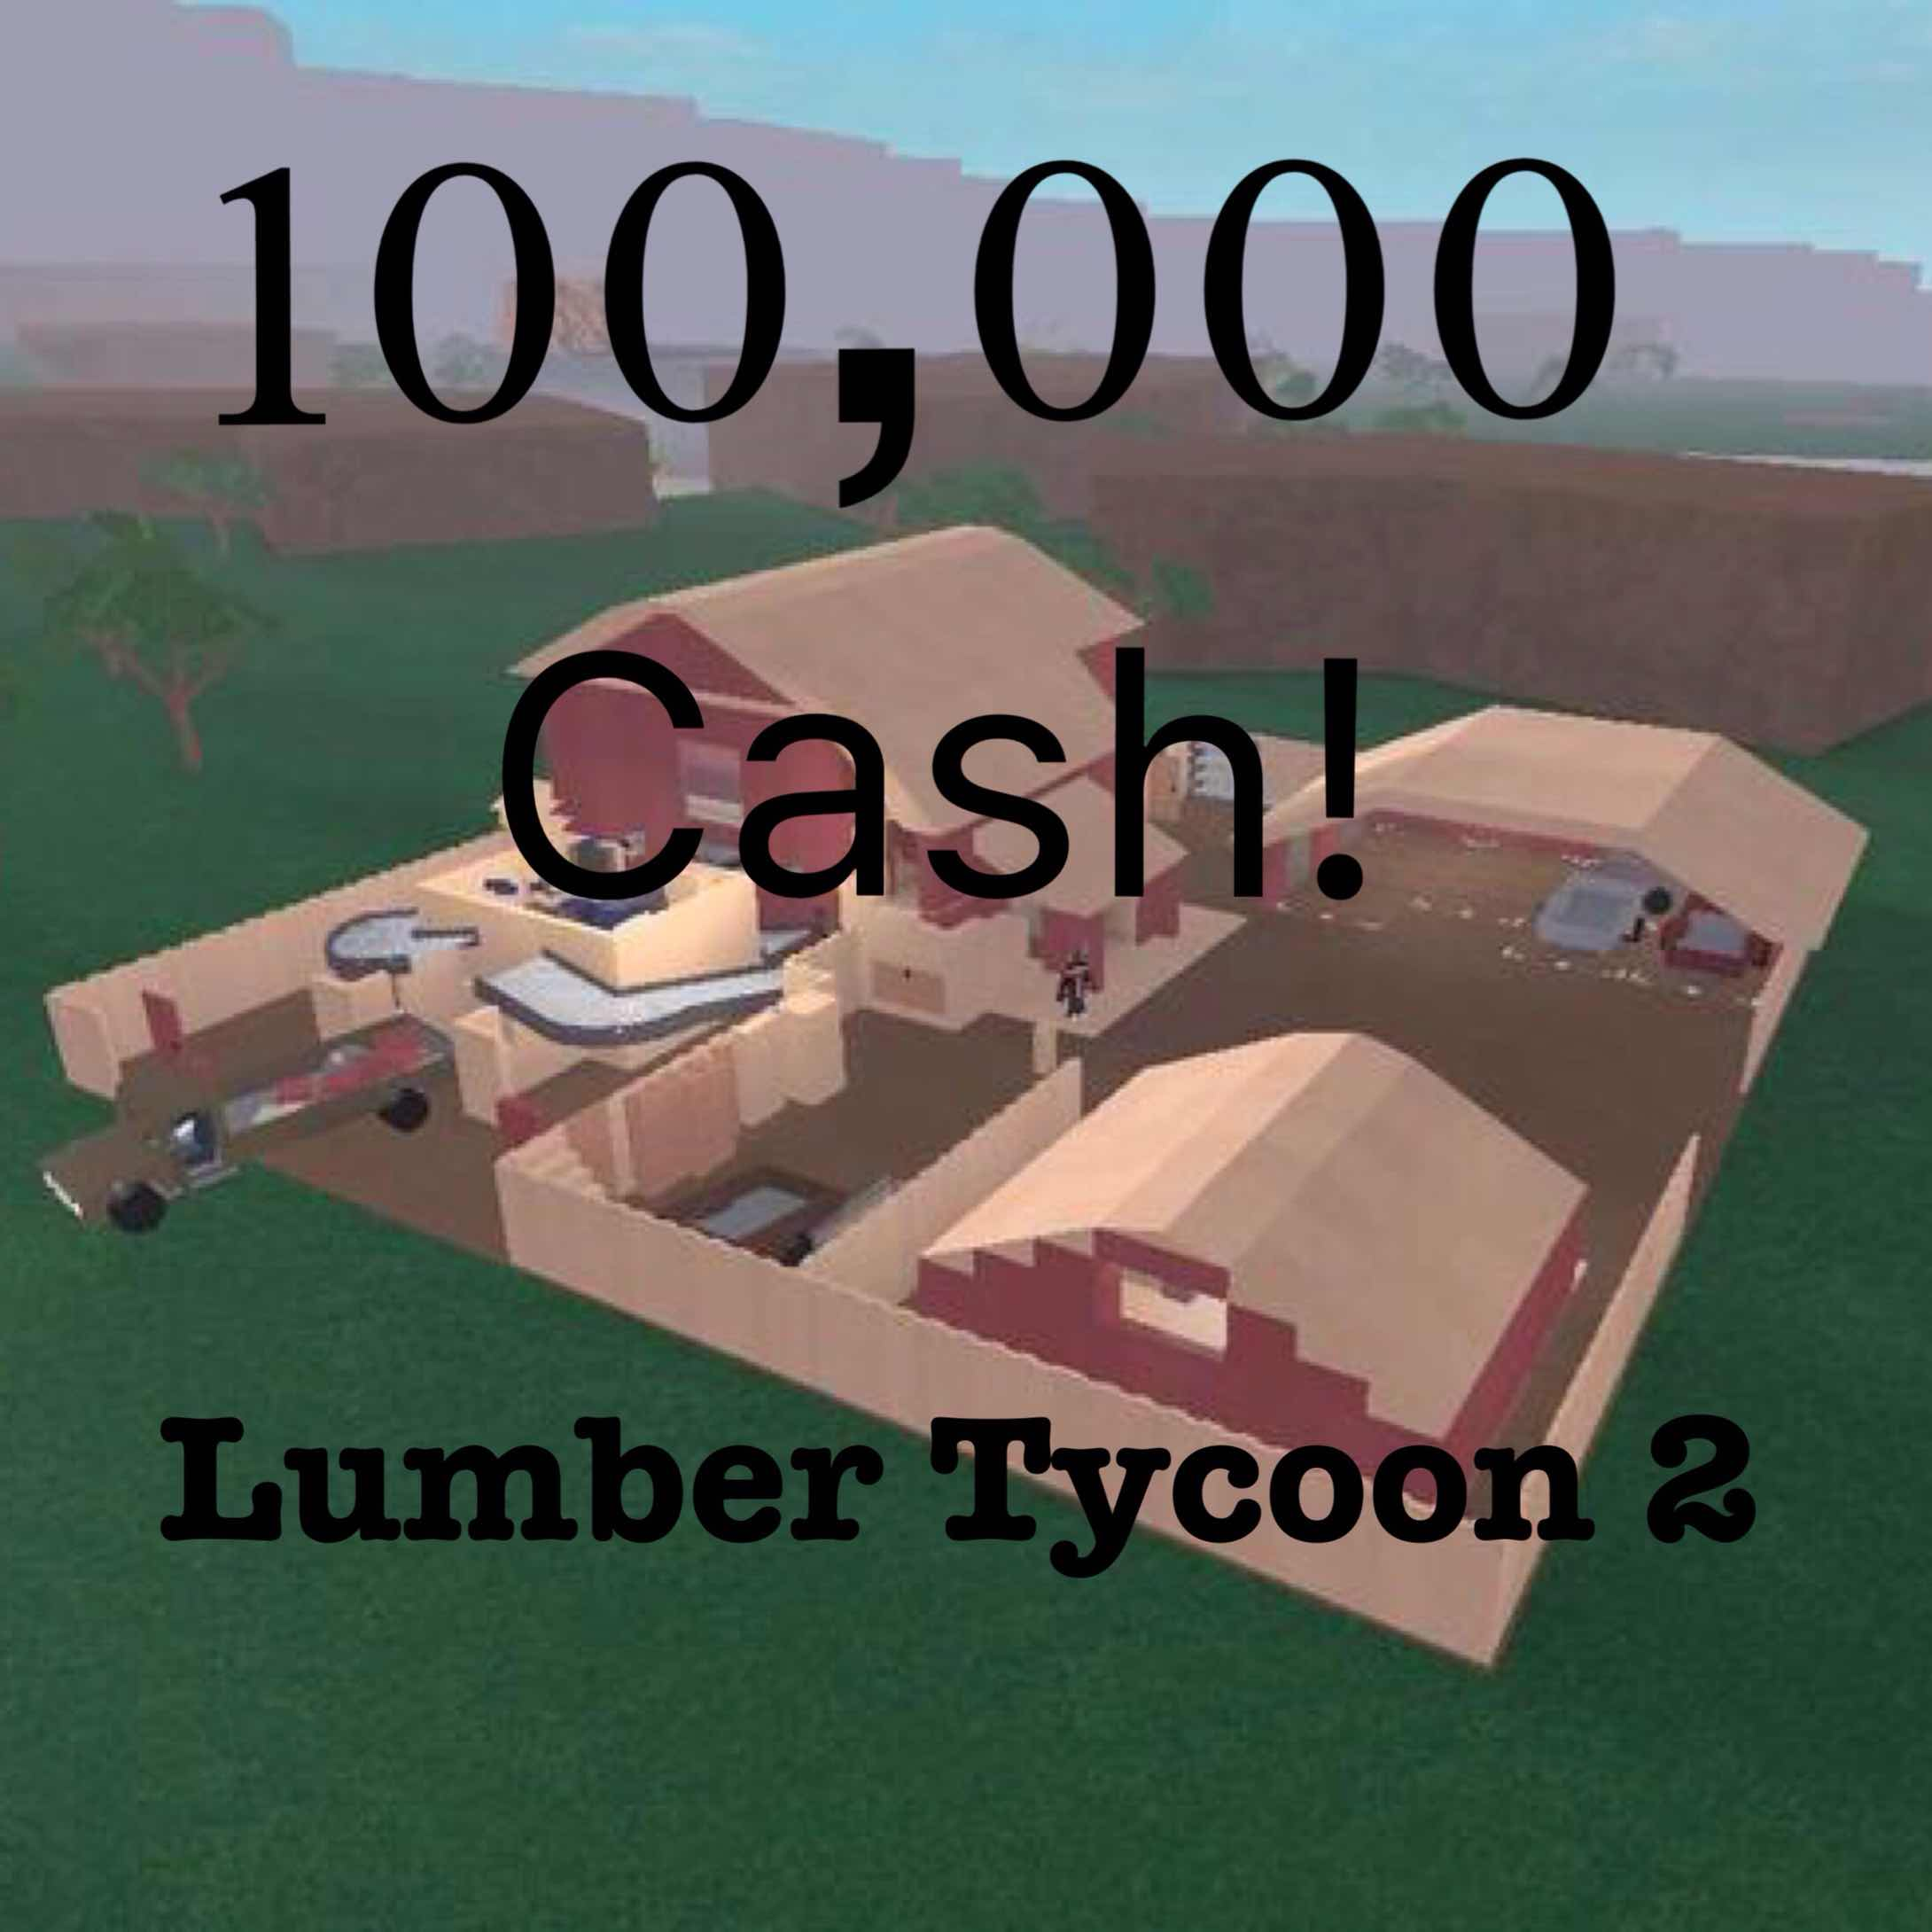 How To Play Lumber Tycoon 2 On Xbox One